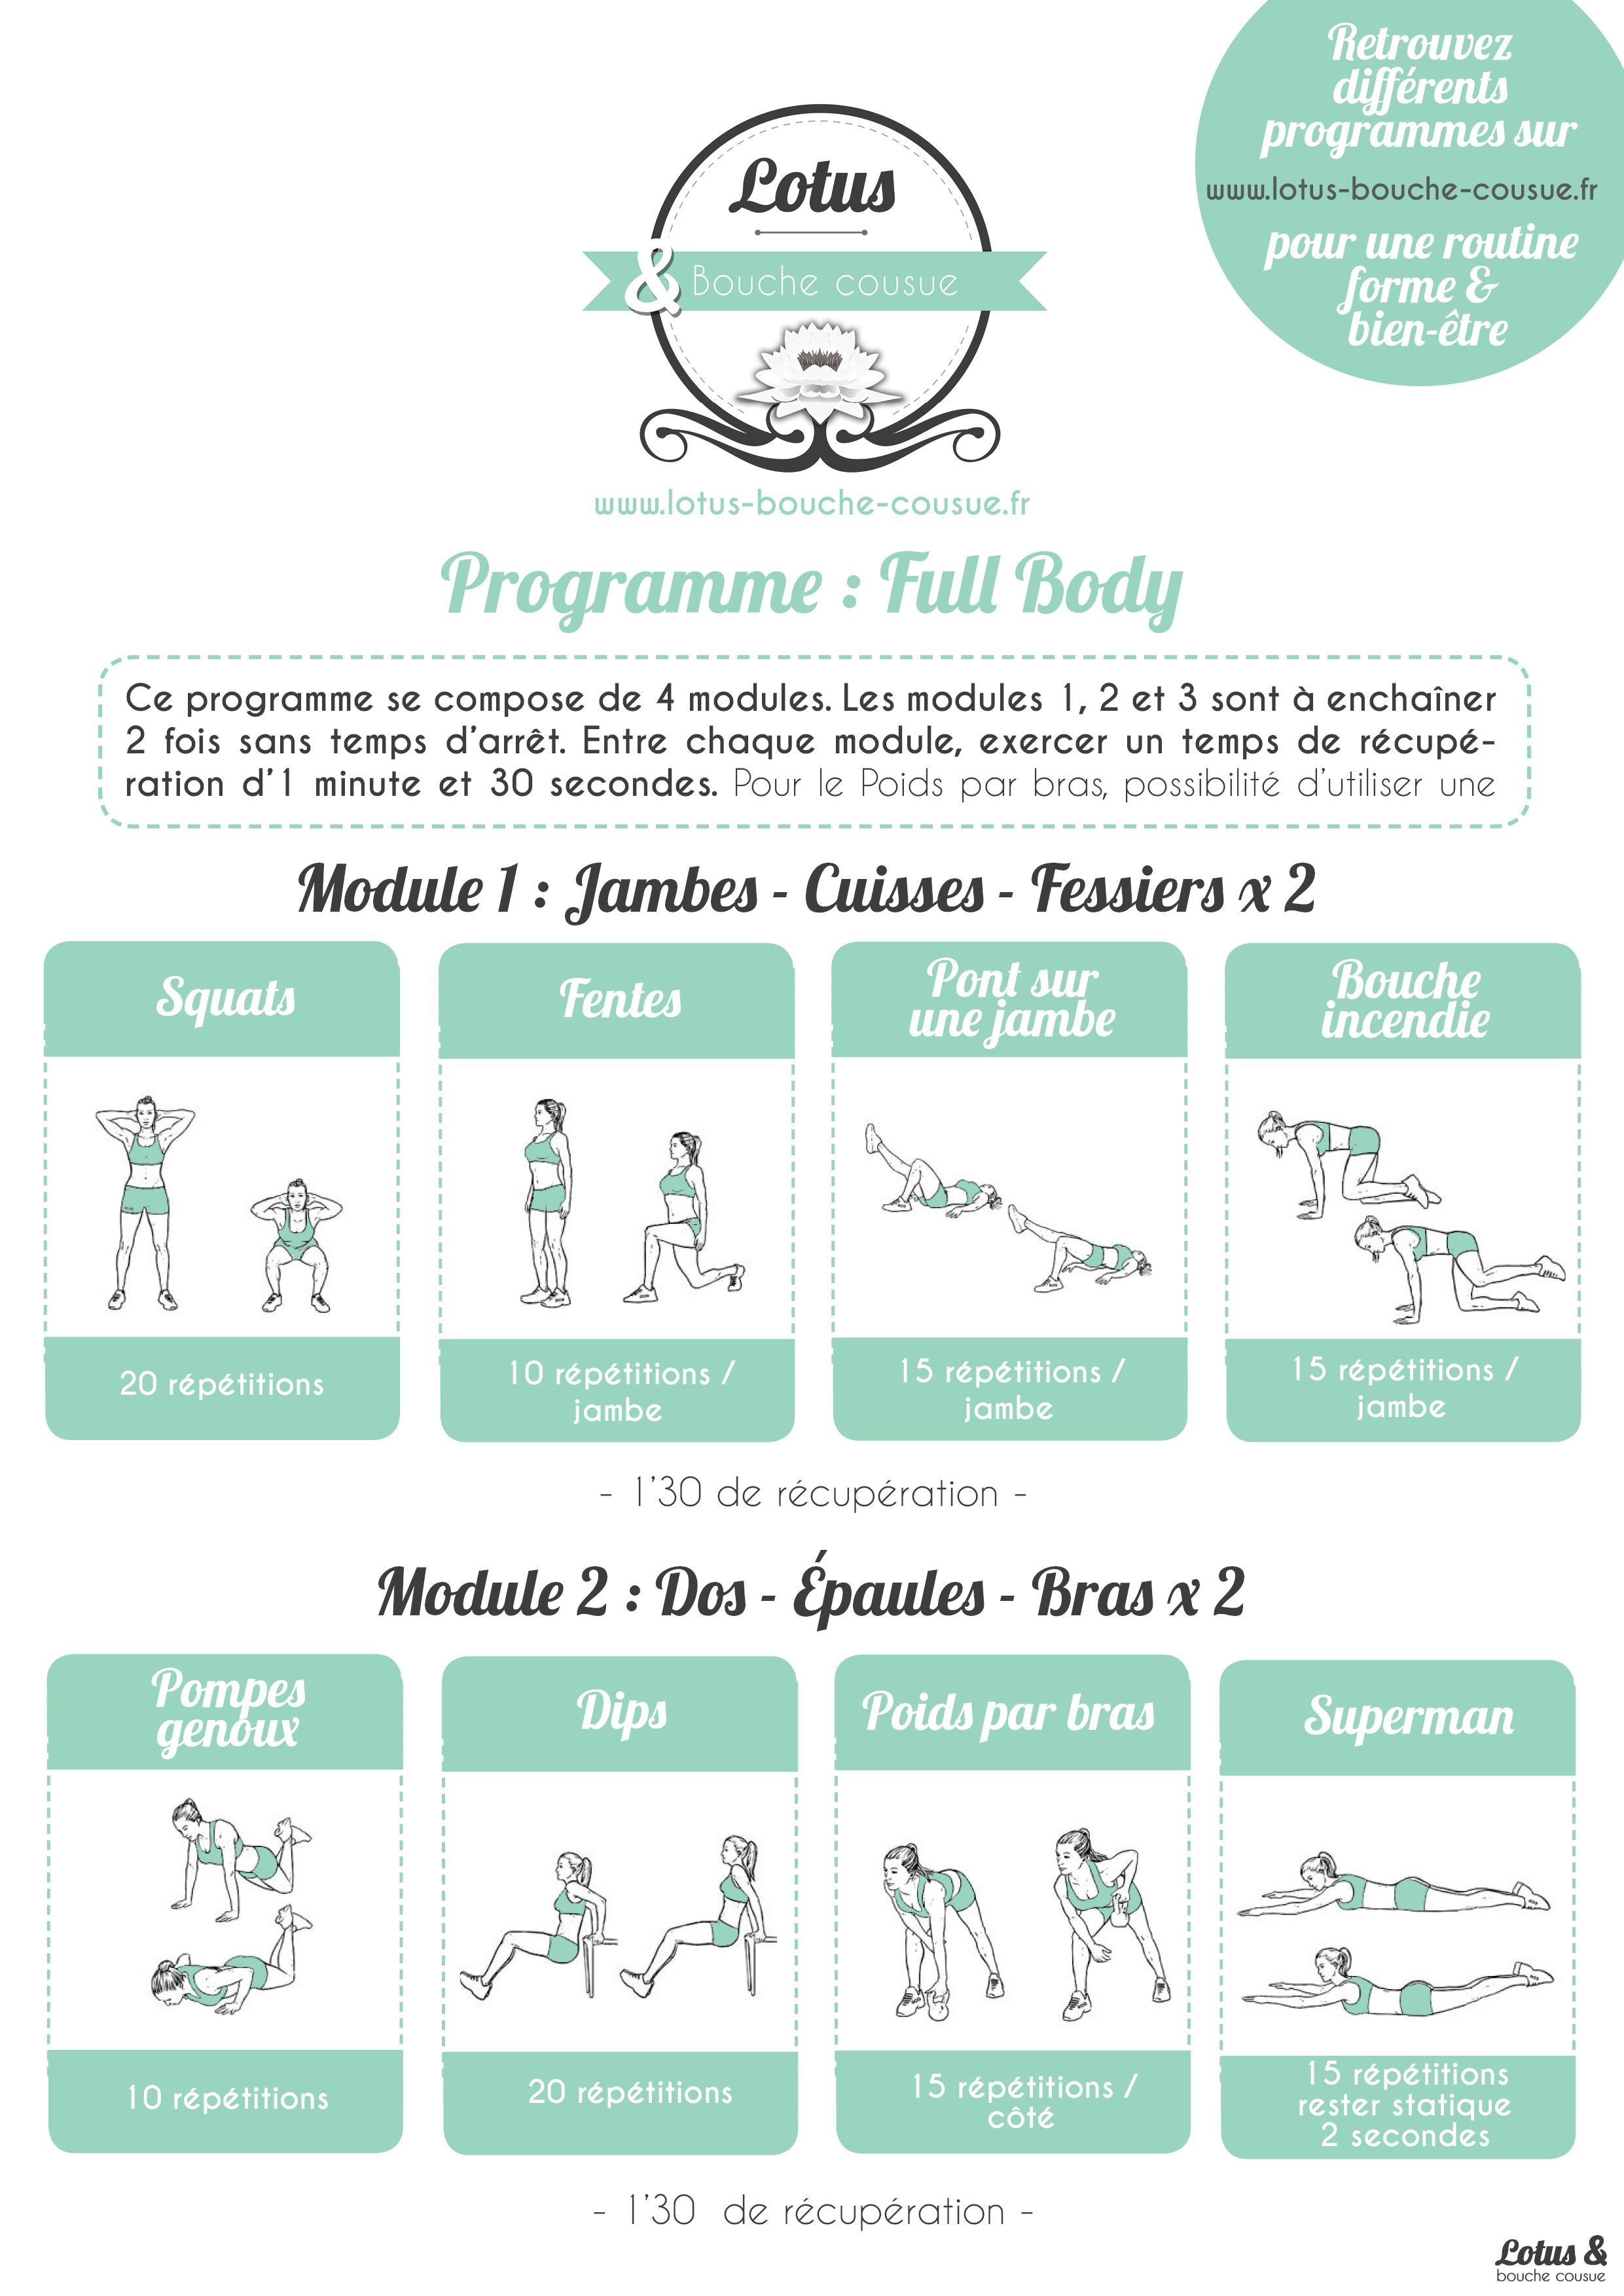 Programme Fitness Full Body n°2   Un programme complet a83443aaf61